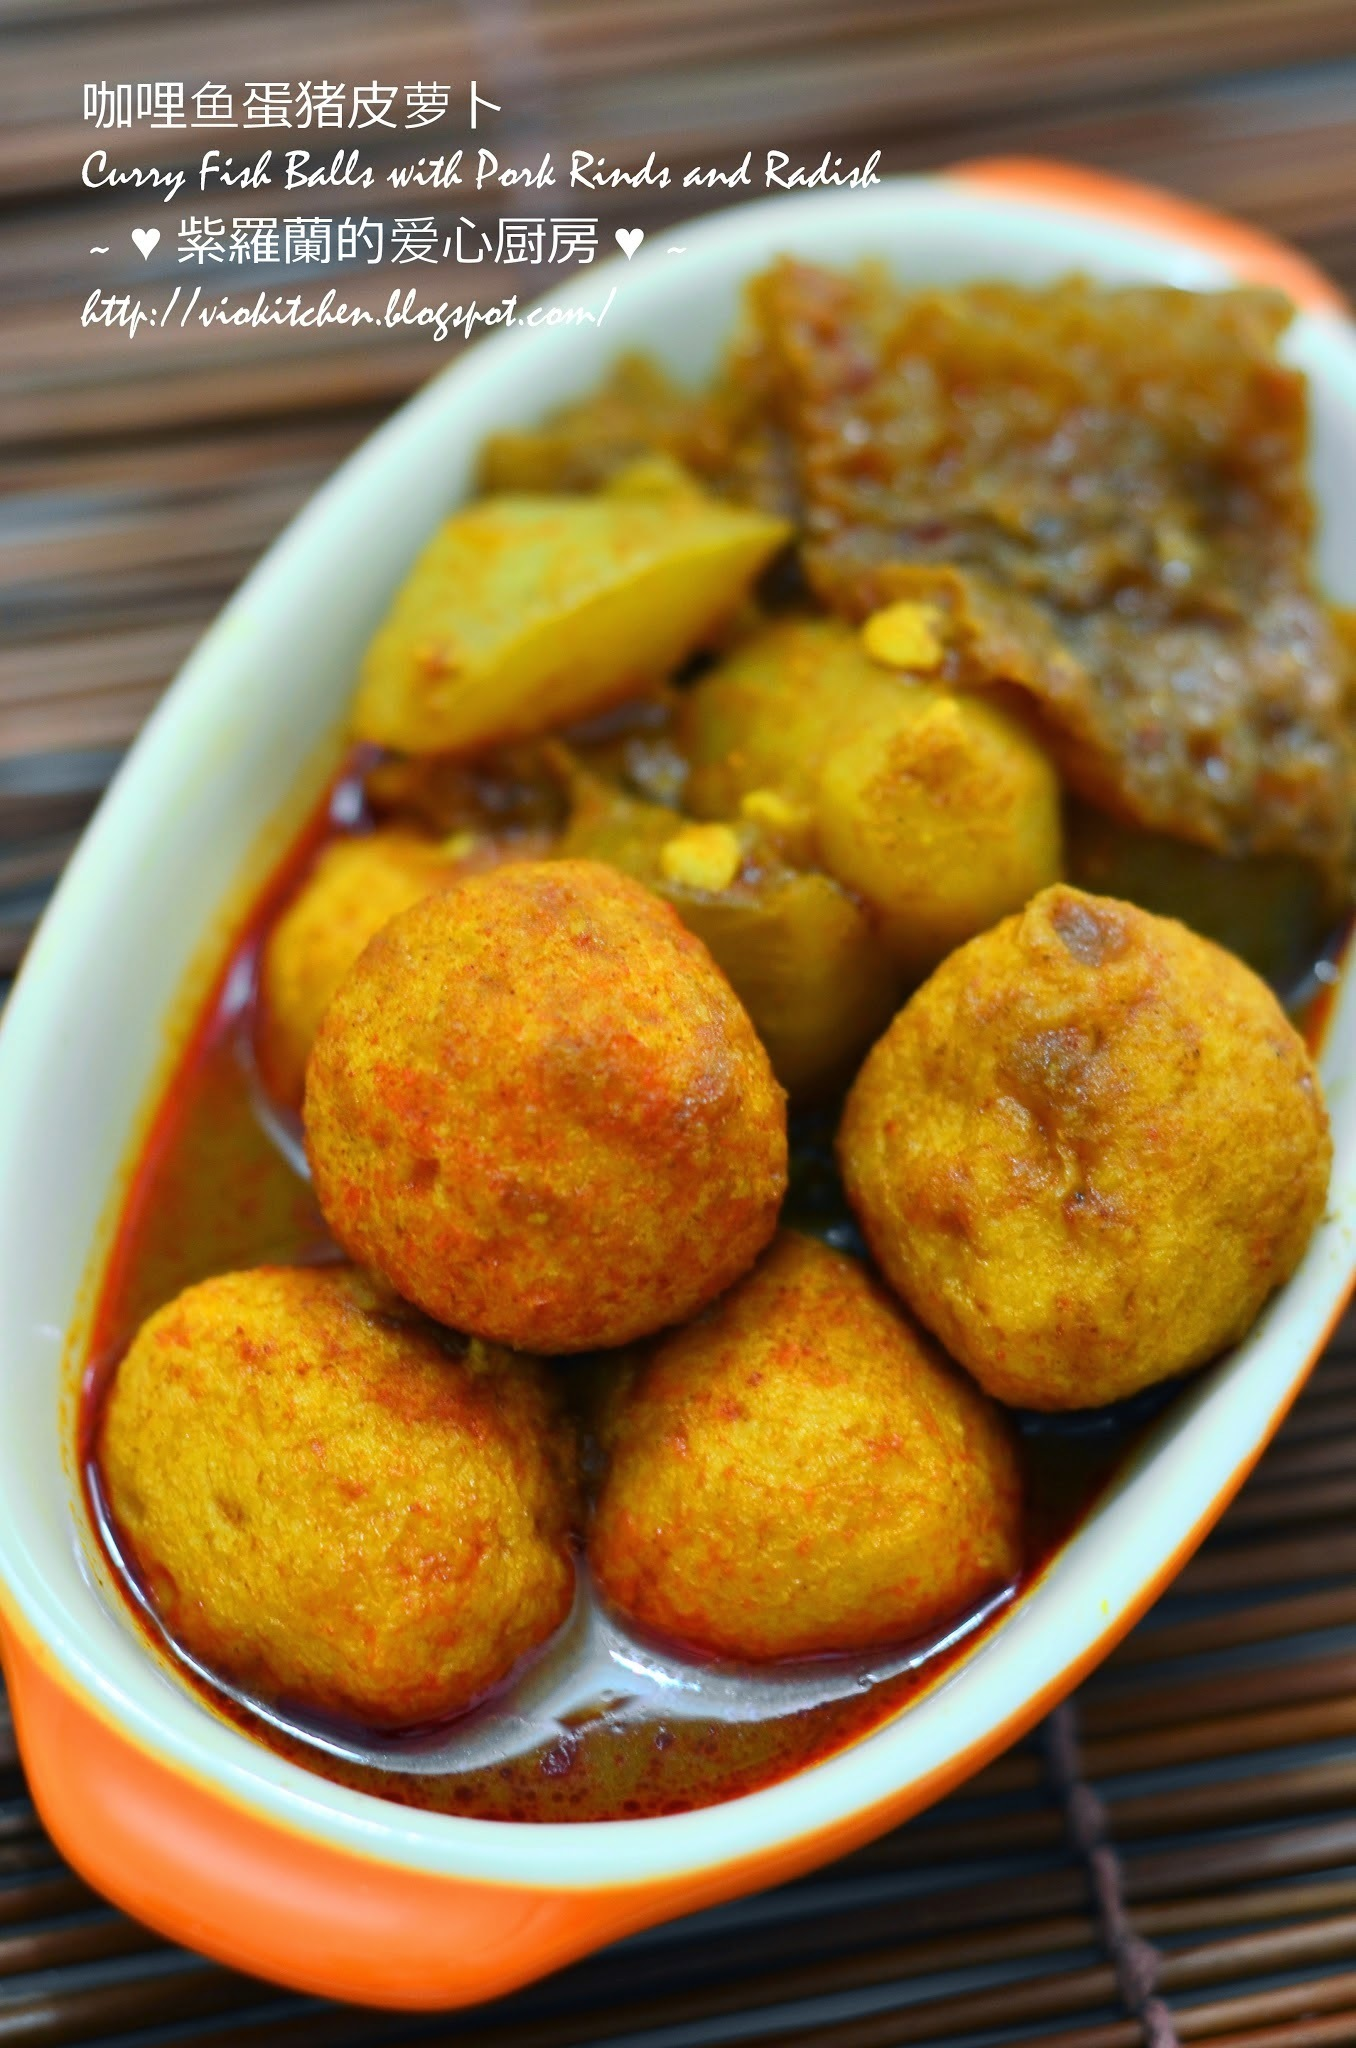 咖哩鱼蛋猪皮萝卜 Curry Fish Balls with Pork Rinds and Radish